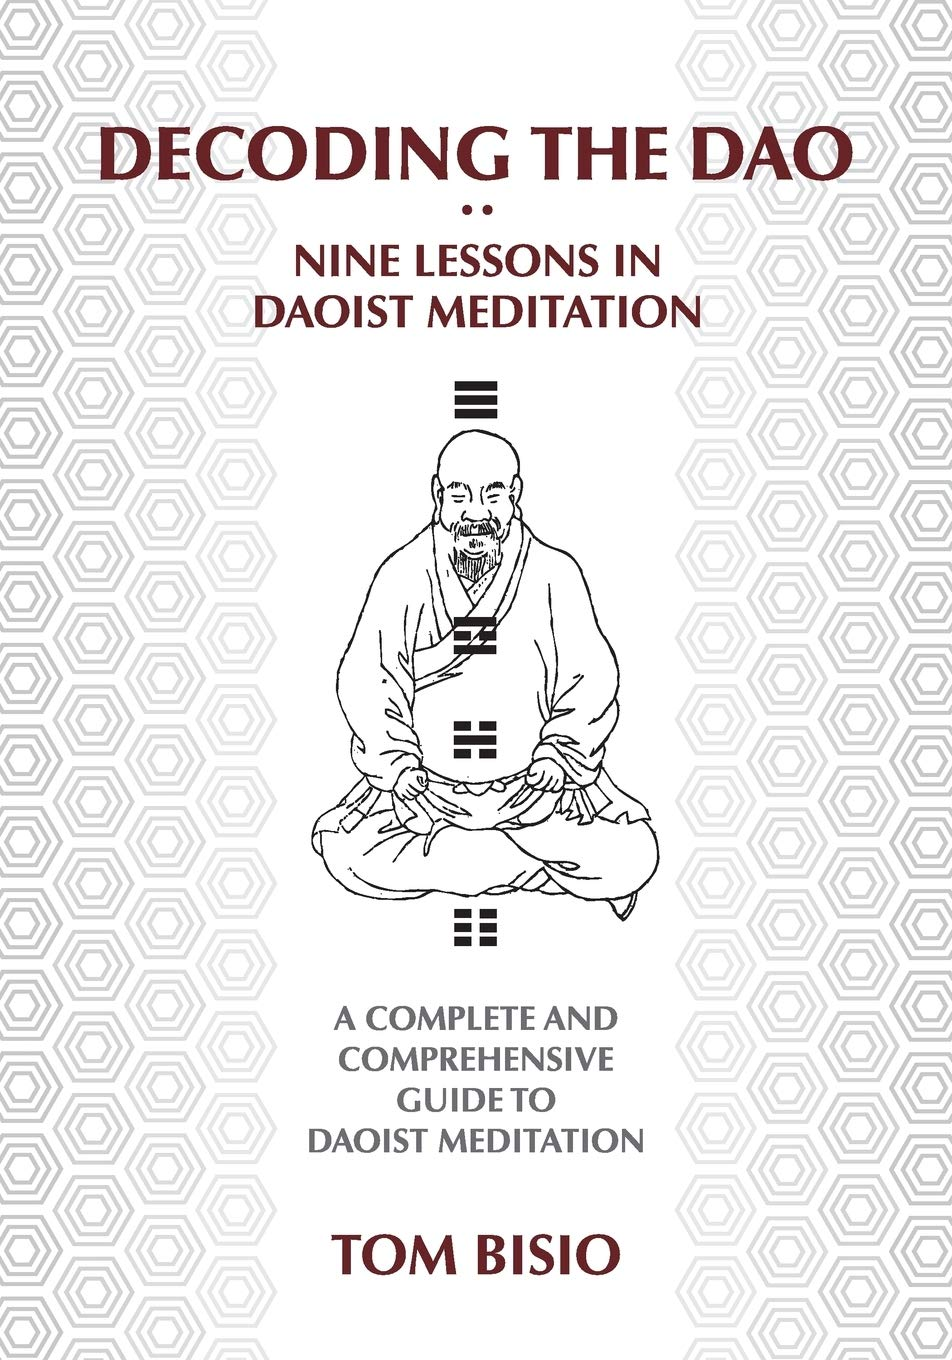 Decoding The DAO  Nine Lessons In Daoist Meditation  A Complete And Comprehensive Guide To Daoist Meditation